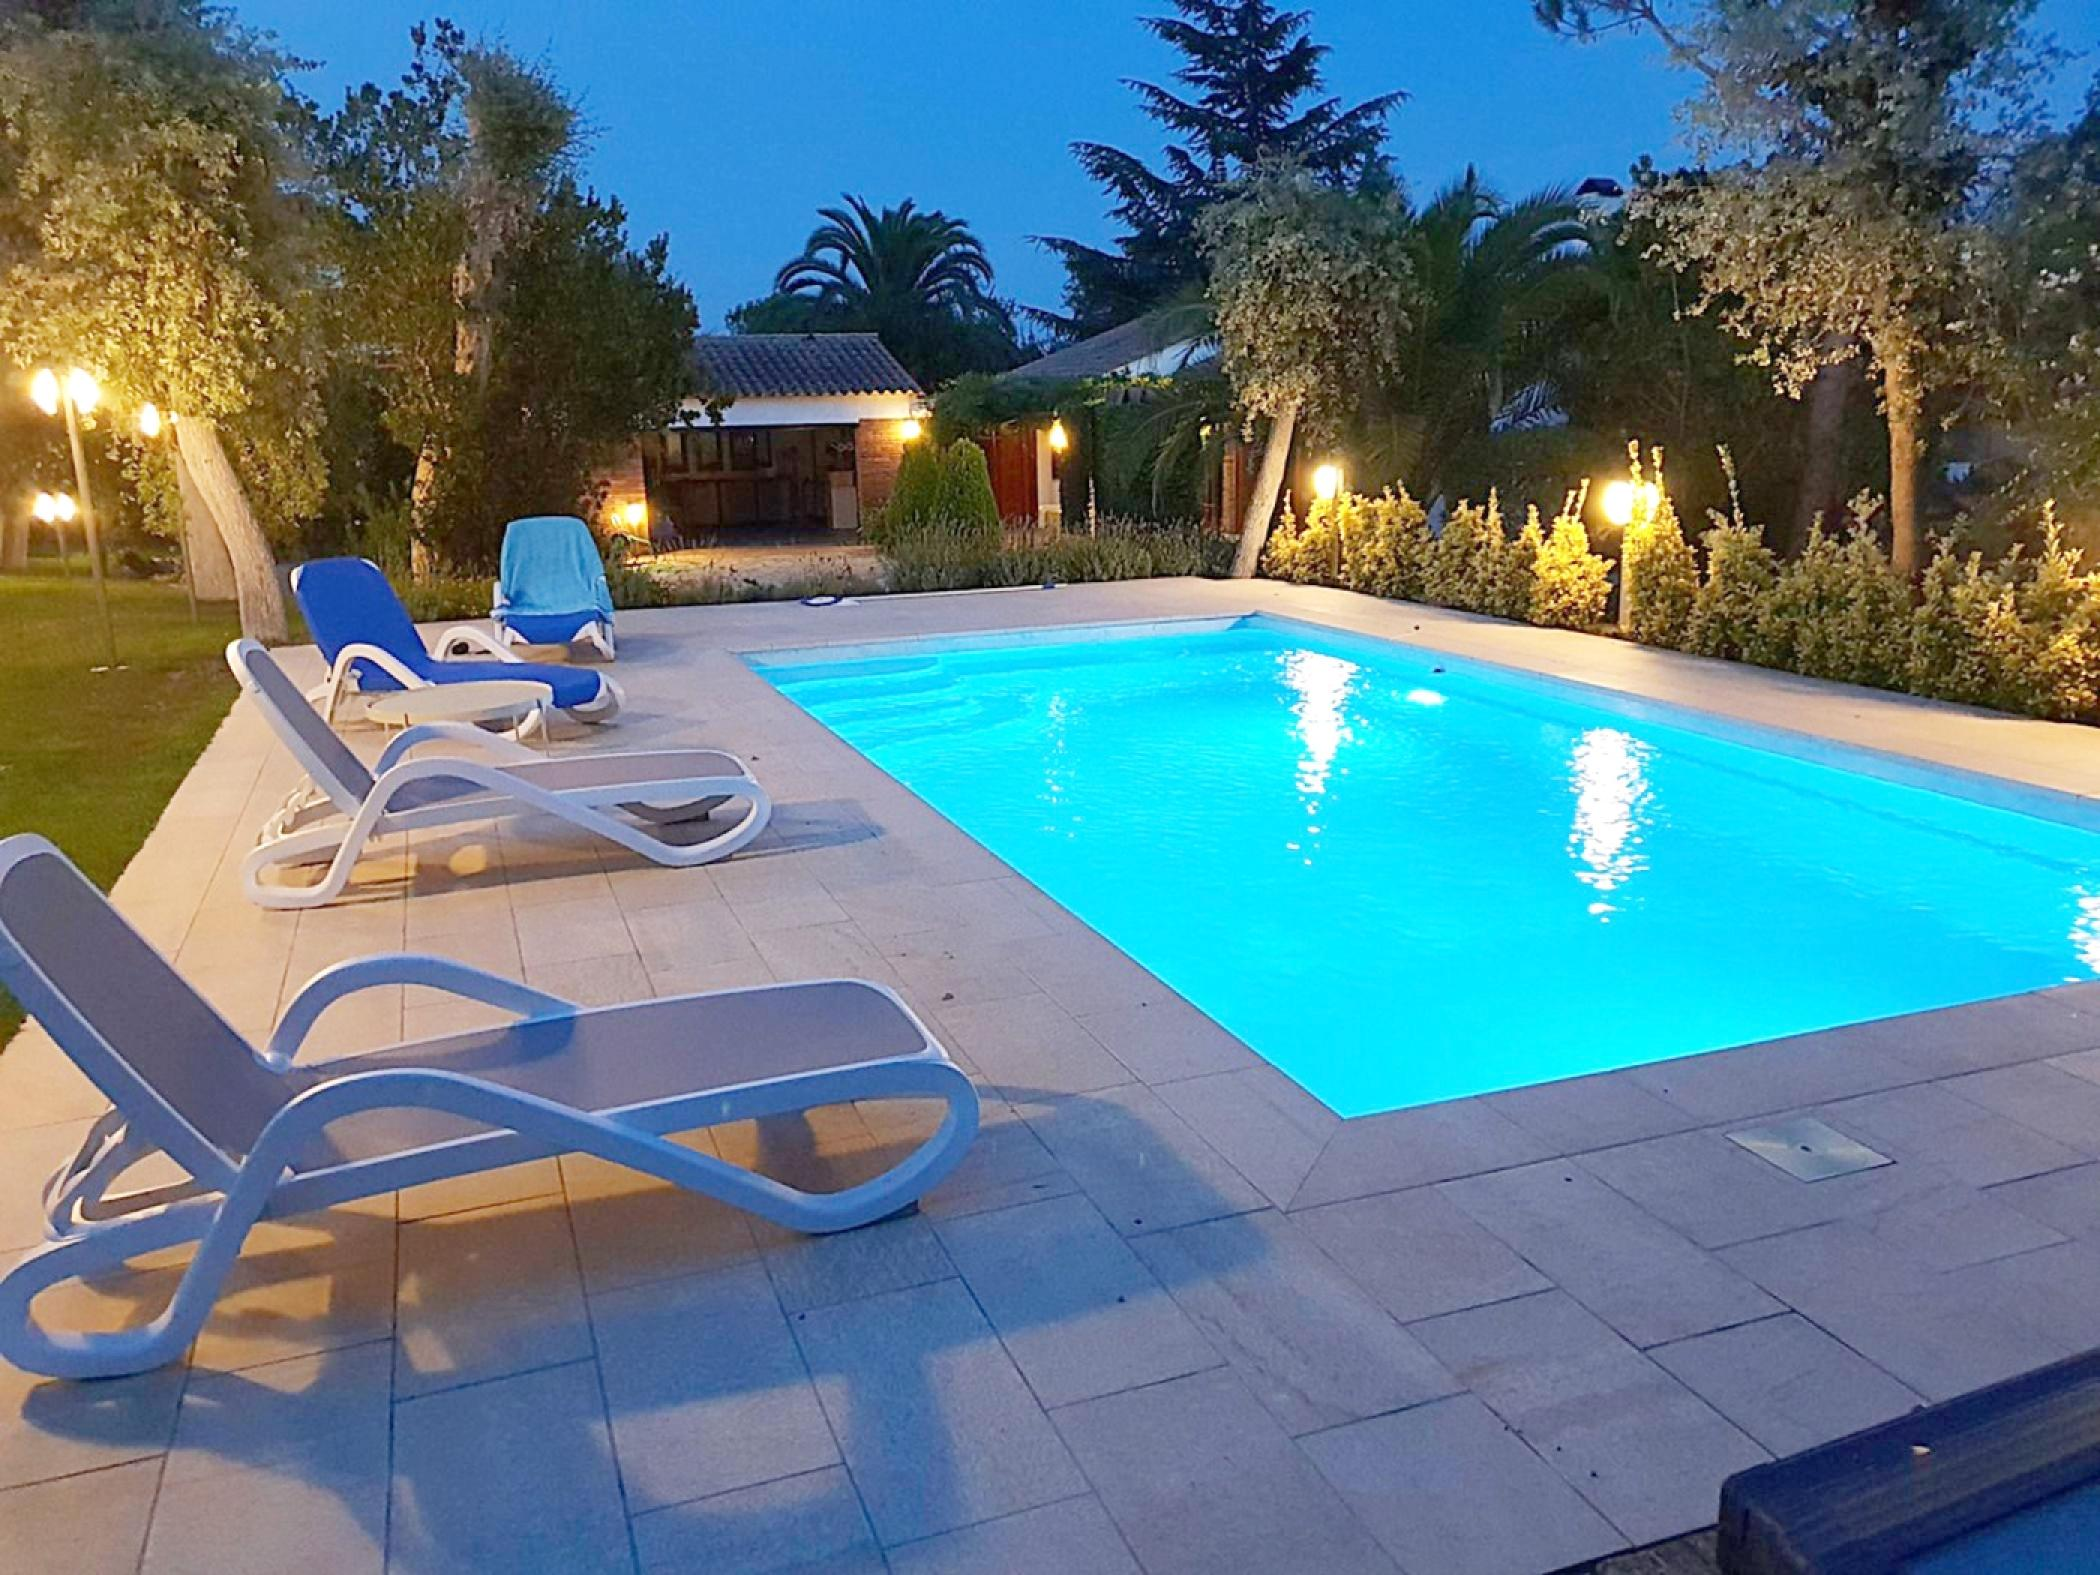 Rent Villa with Swimming pool in Caldes de Malavella - Villa a Caldes de Malavella Molins - 2